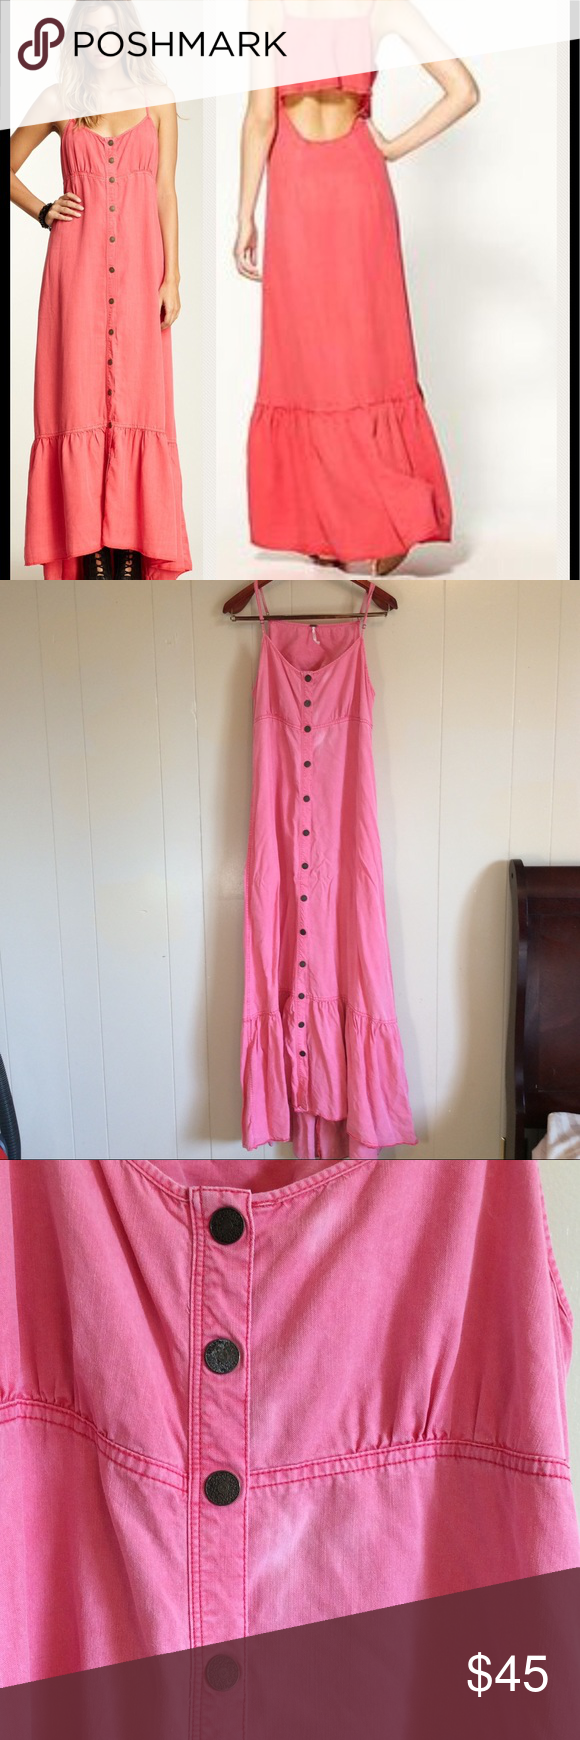 Large free people tencel maxi dress open back salmon pink color